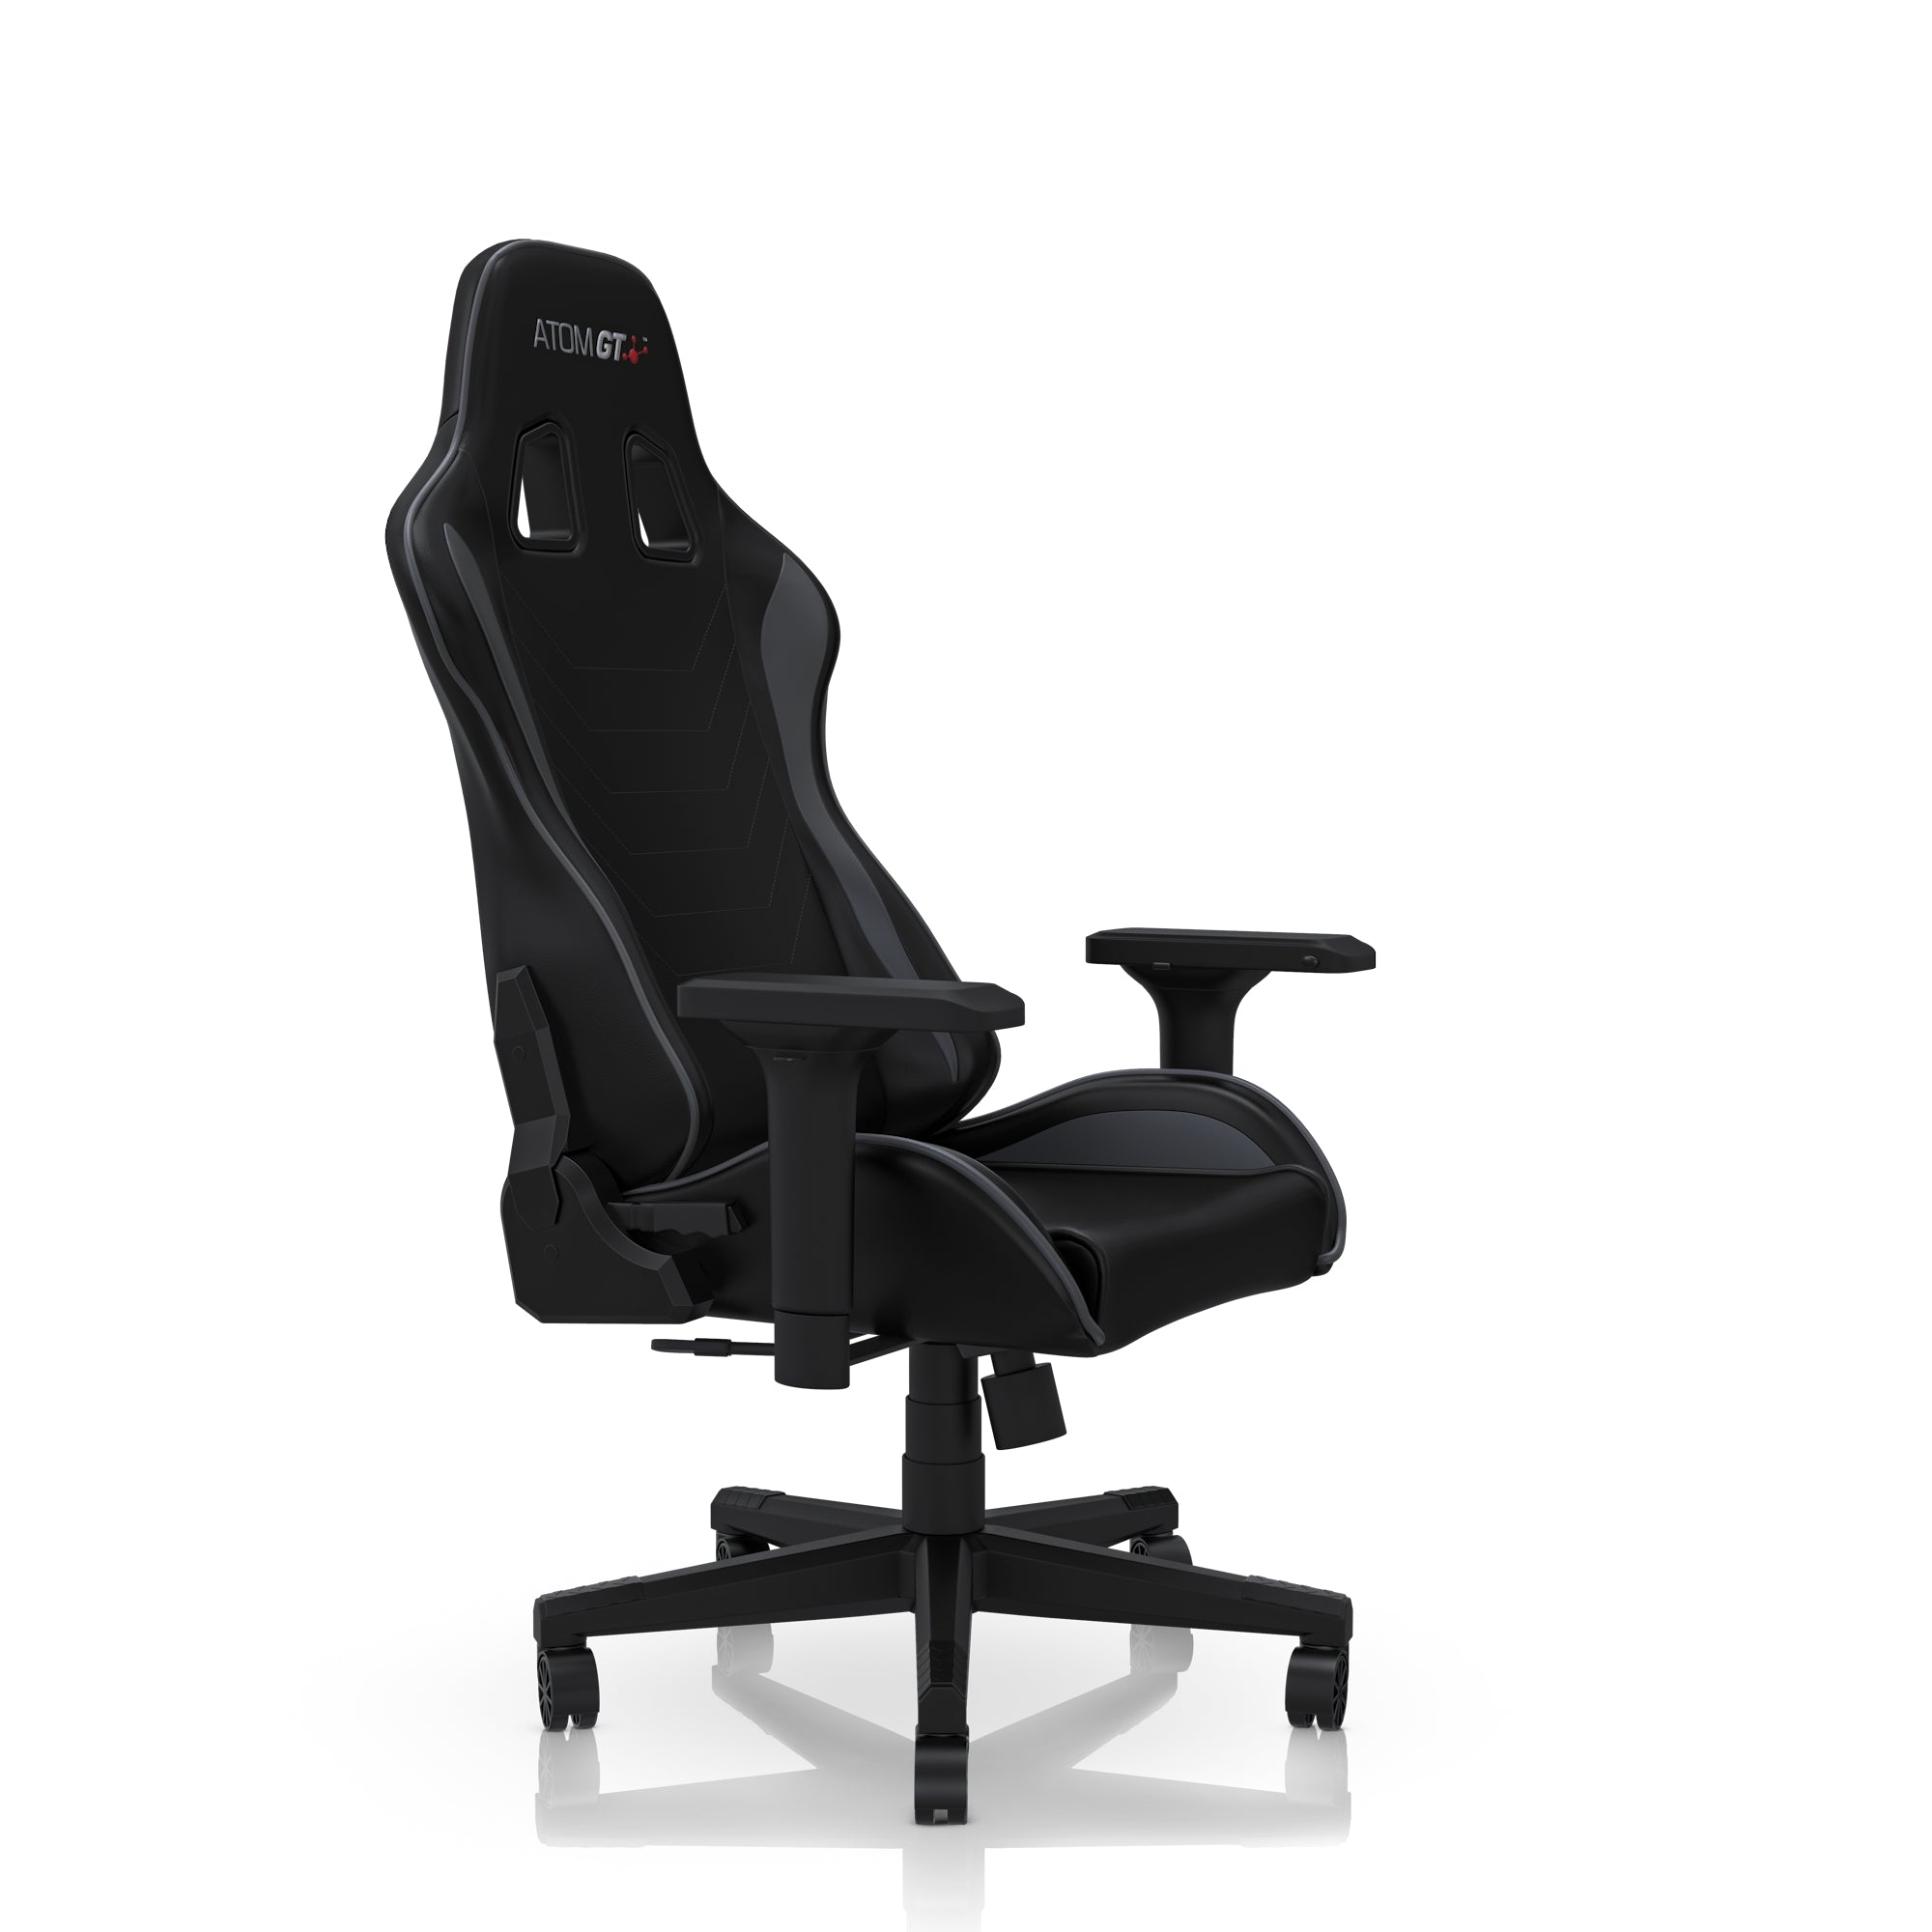 ATOM™ GT Series: PC Office Gaming Chair